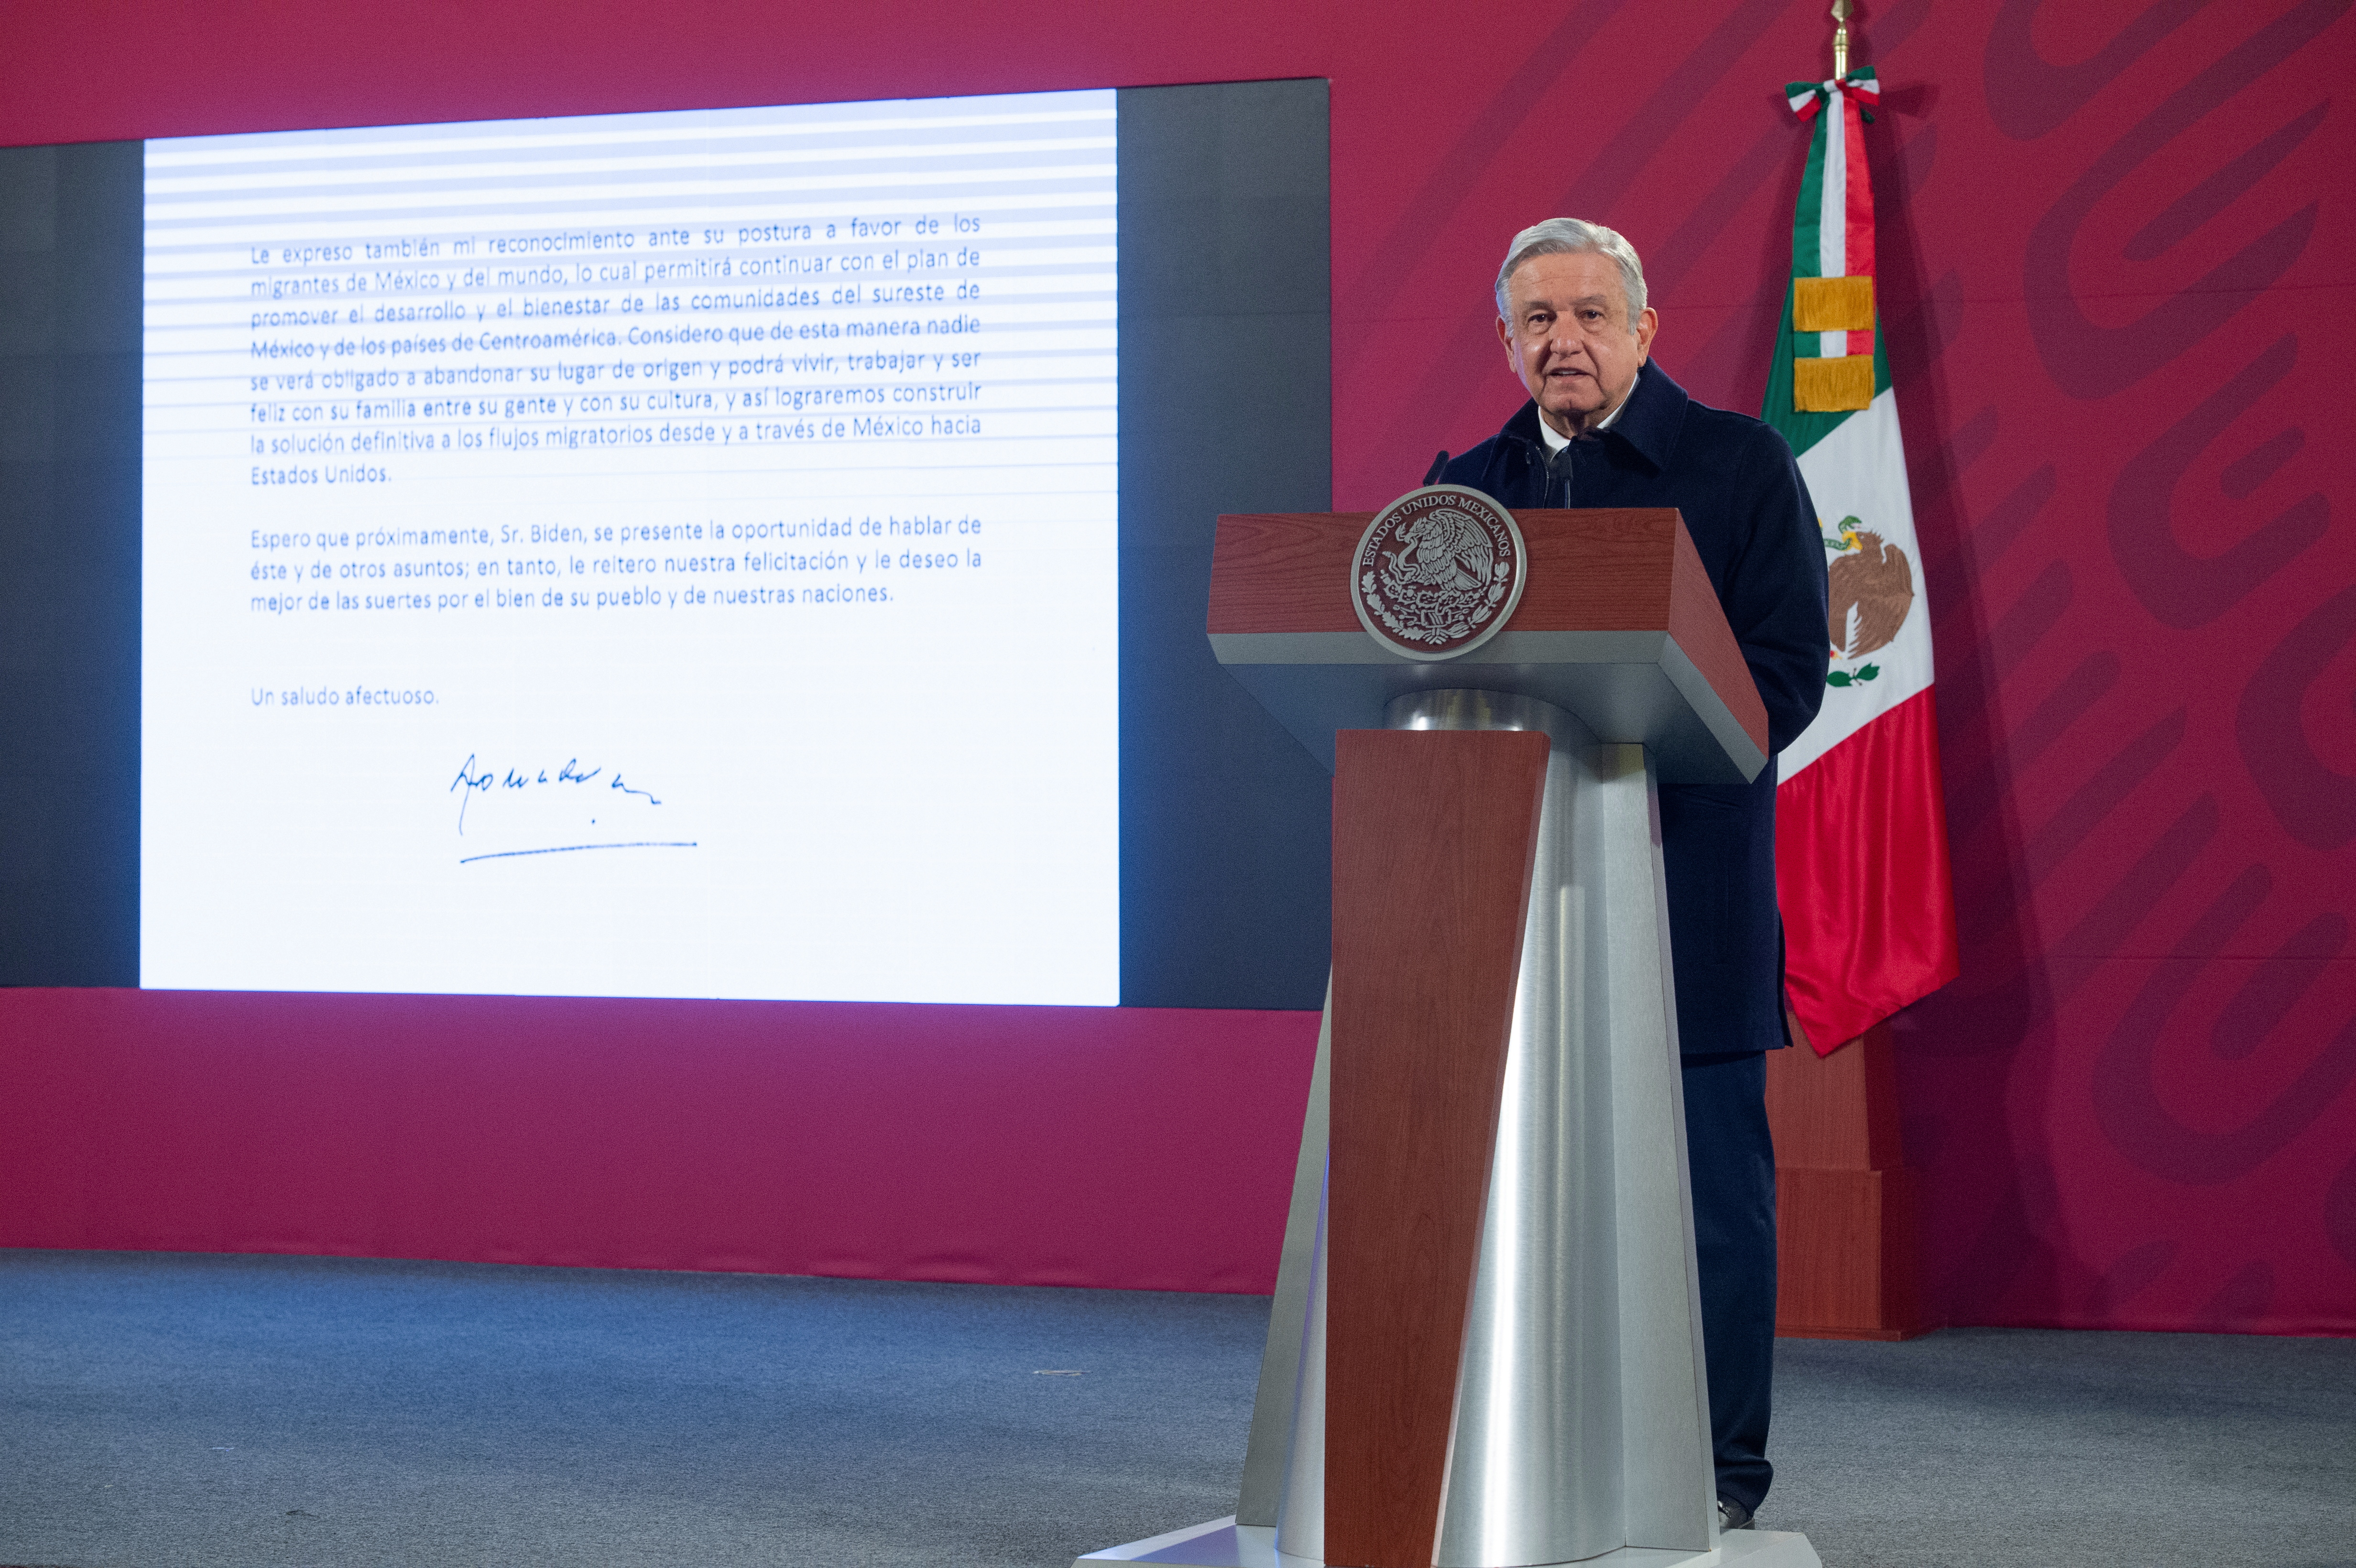 Mexico's President Andres Manuel Lopez Obrador speaks as a screen displays the letter he sent to U.S. President-elect Joe Biden during a news conference at the National Palace, in Mexico City, Mexico December 15, 2020. Mexico's Presidency/Handout via REUTERS ATTENTION EDITORS - THIS IMAGE HAS BEEN SUPPLIED BY A THIRD PARTY. NO RESALES. NO ARCHIVES